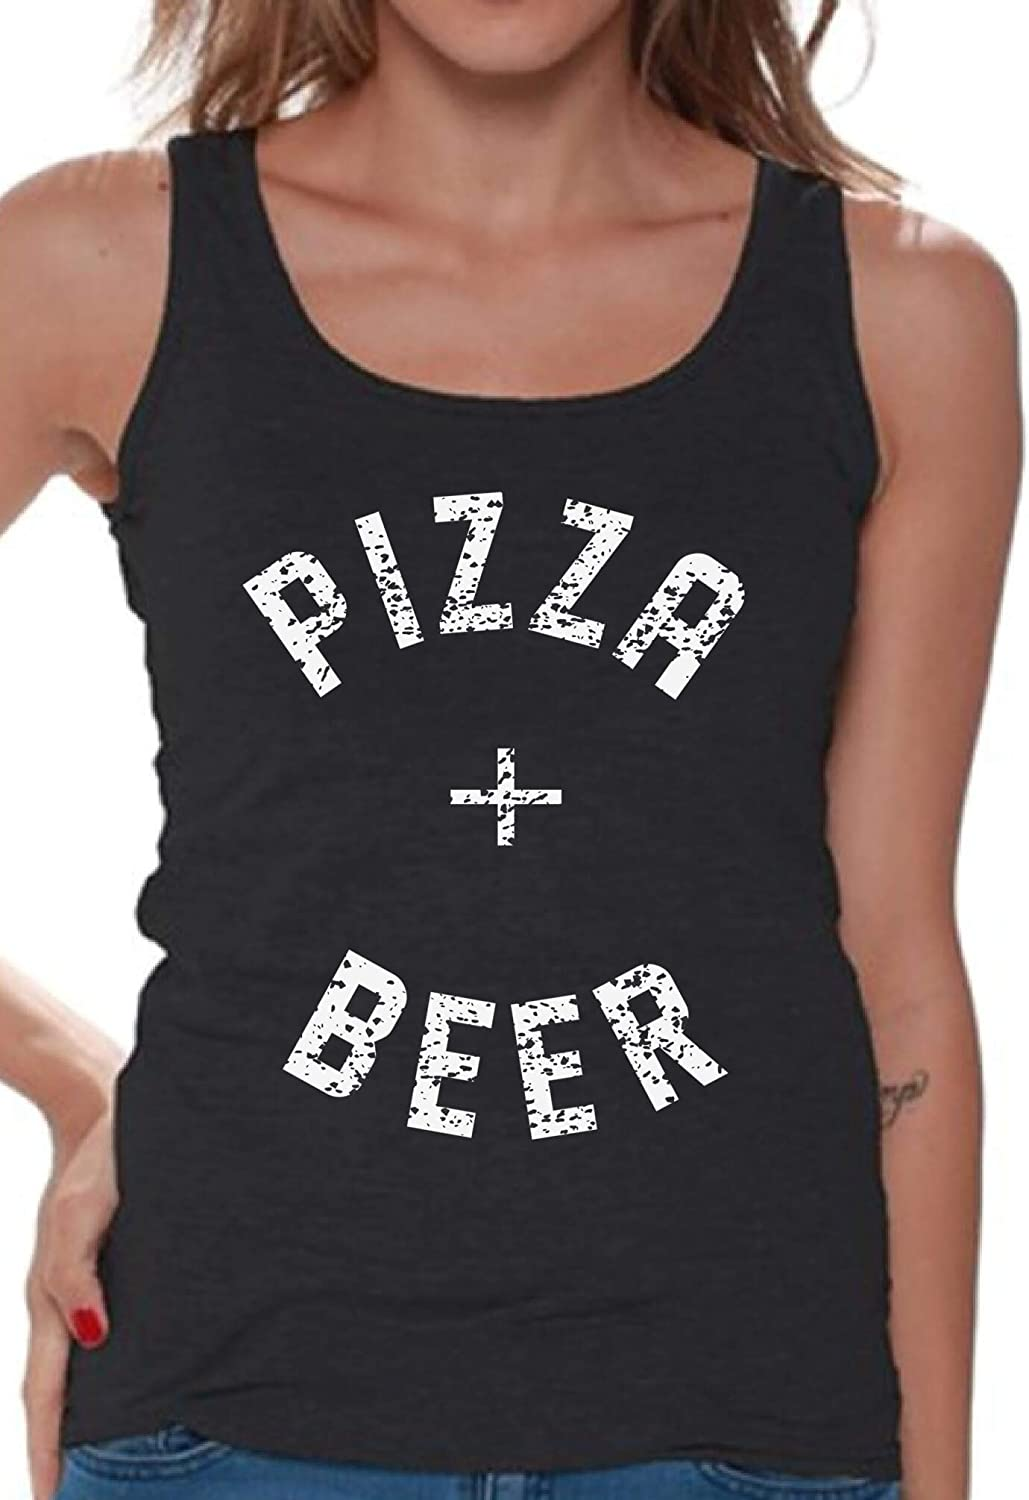 Awkwardstyles Women's Pizza + Beer Tank Top White Food Party Tank + Bookmark